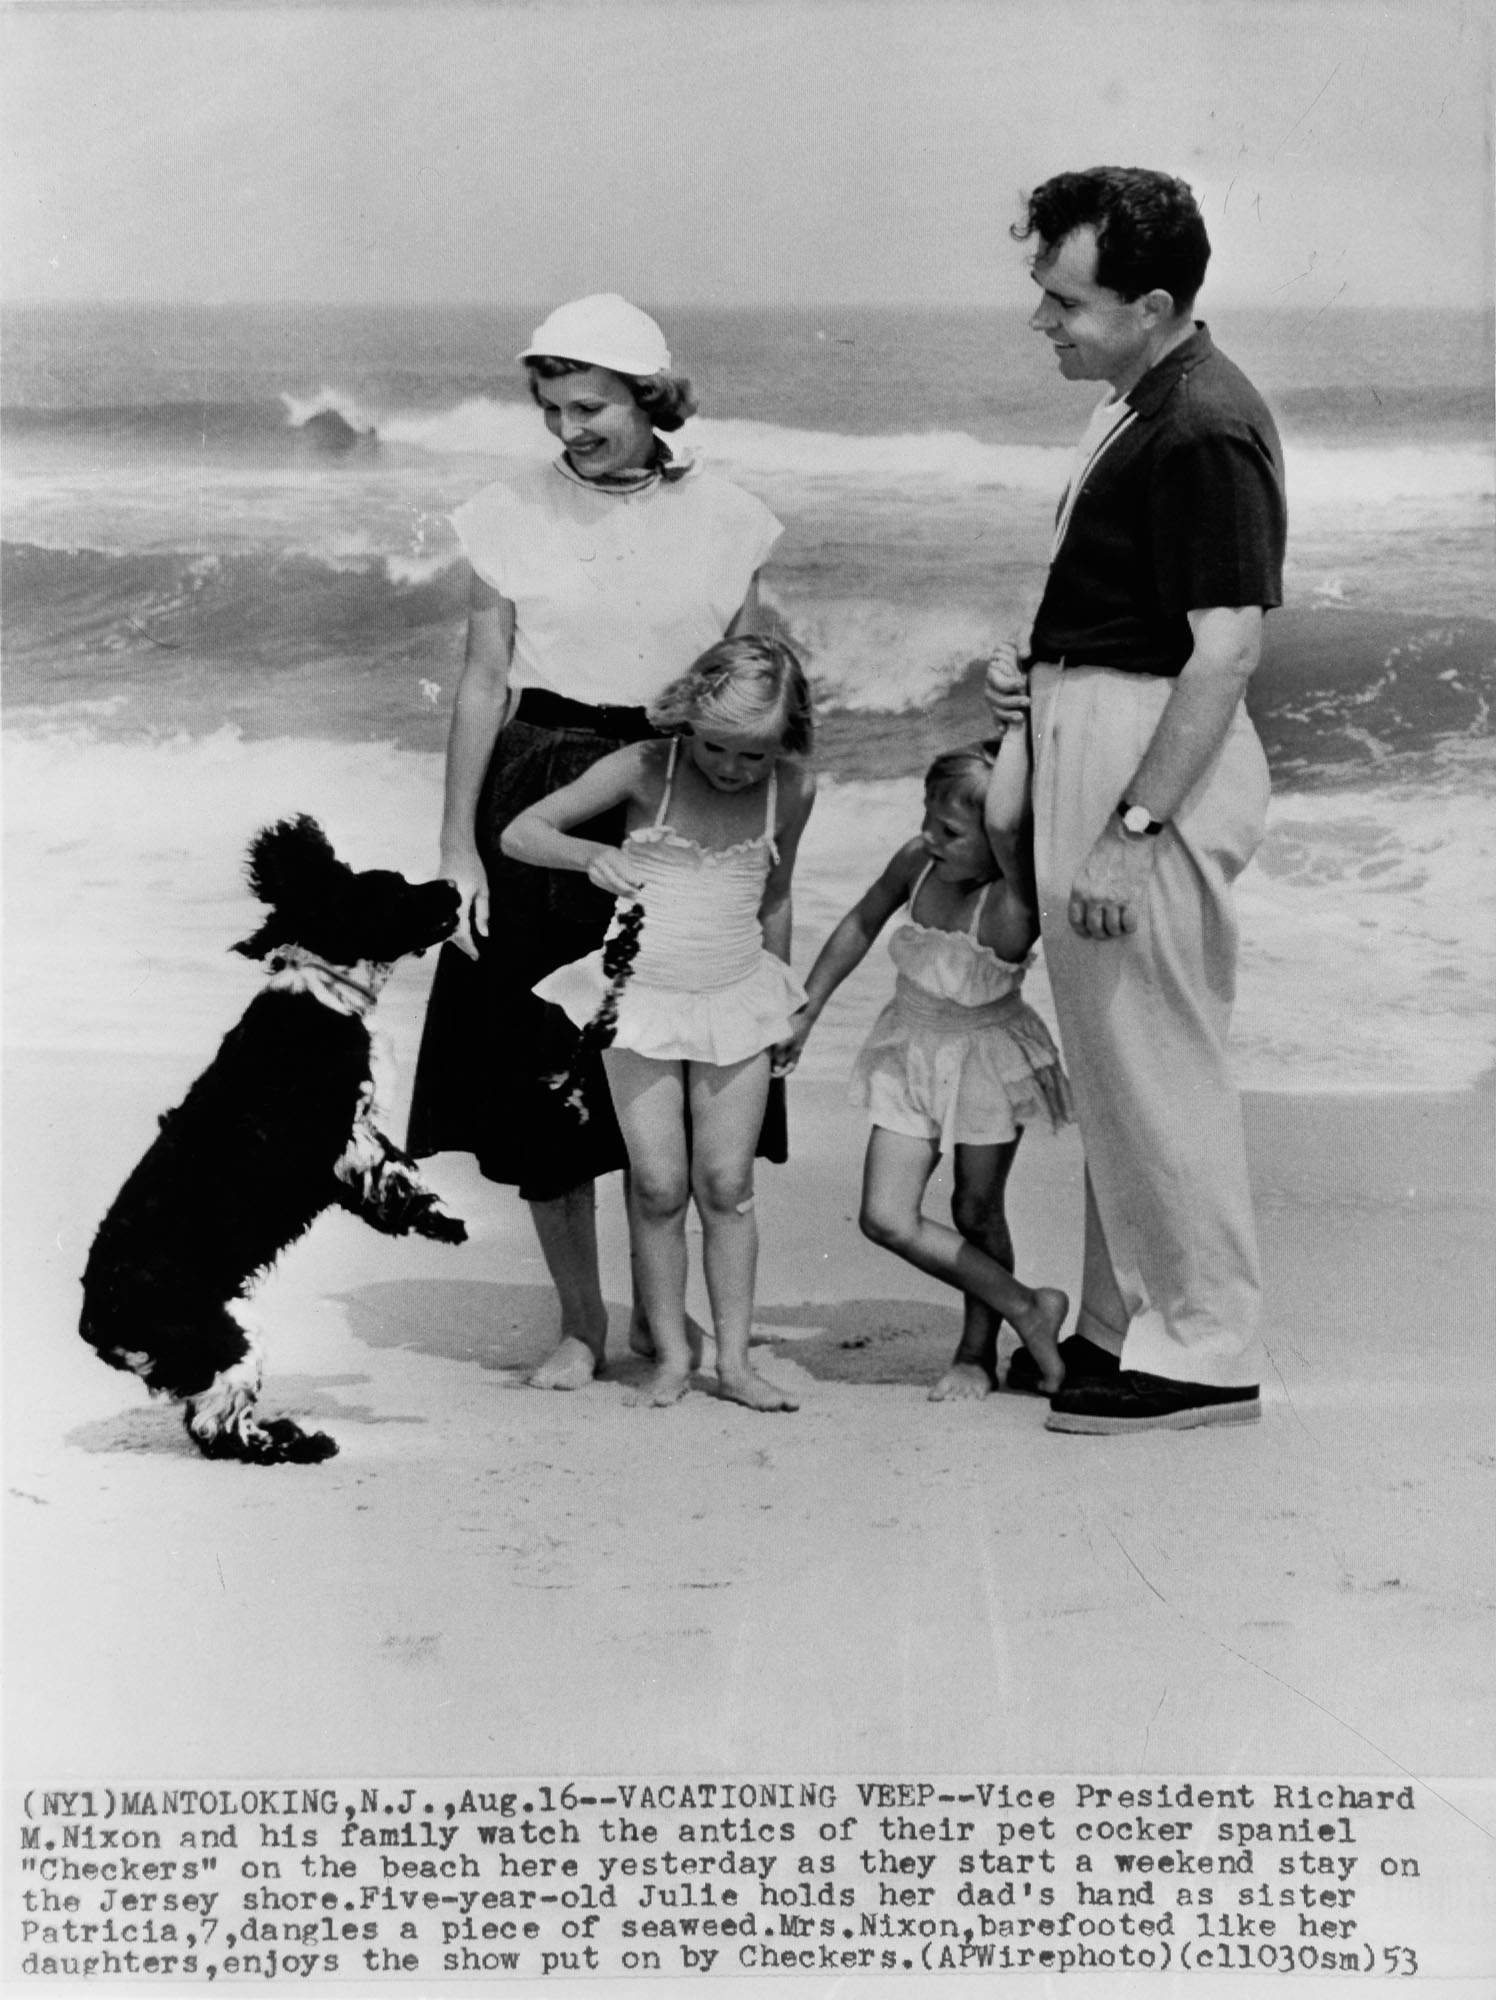 Vice-President Richard Nixon, with wife Pat and daughters Tricia and Julie, watch the antics of their pet cocker spaniel